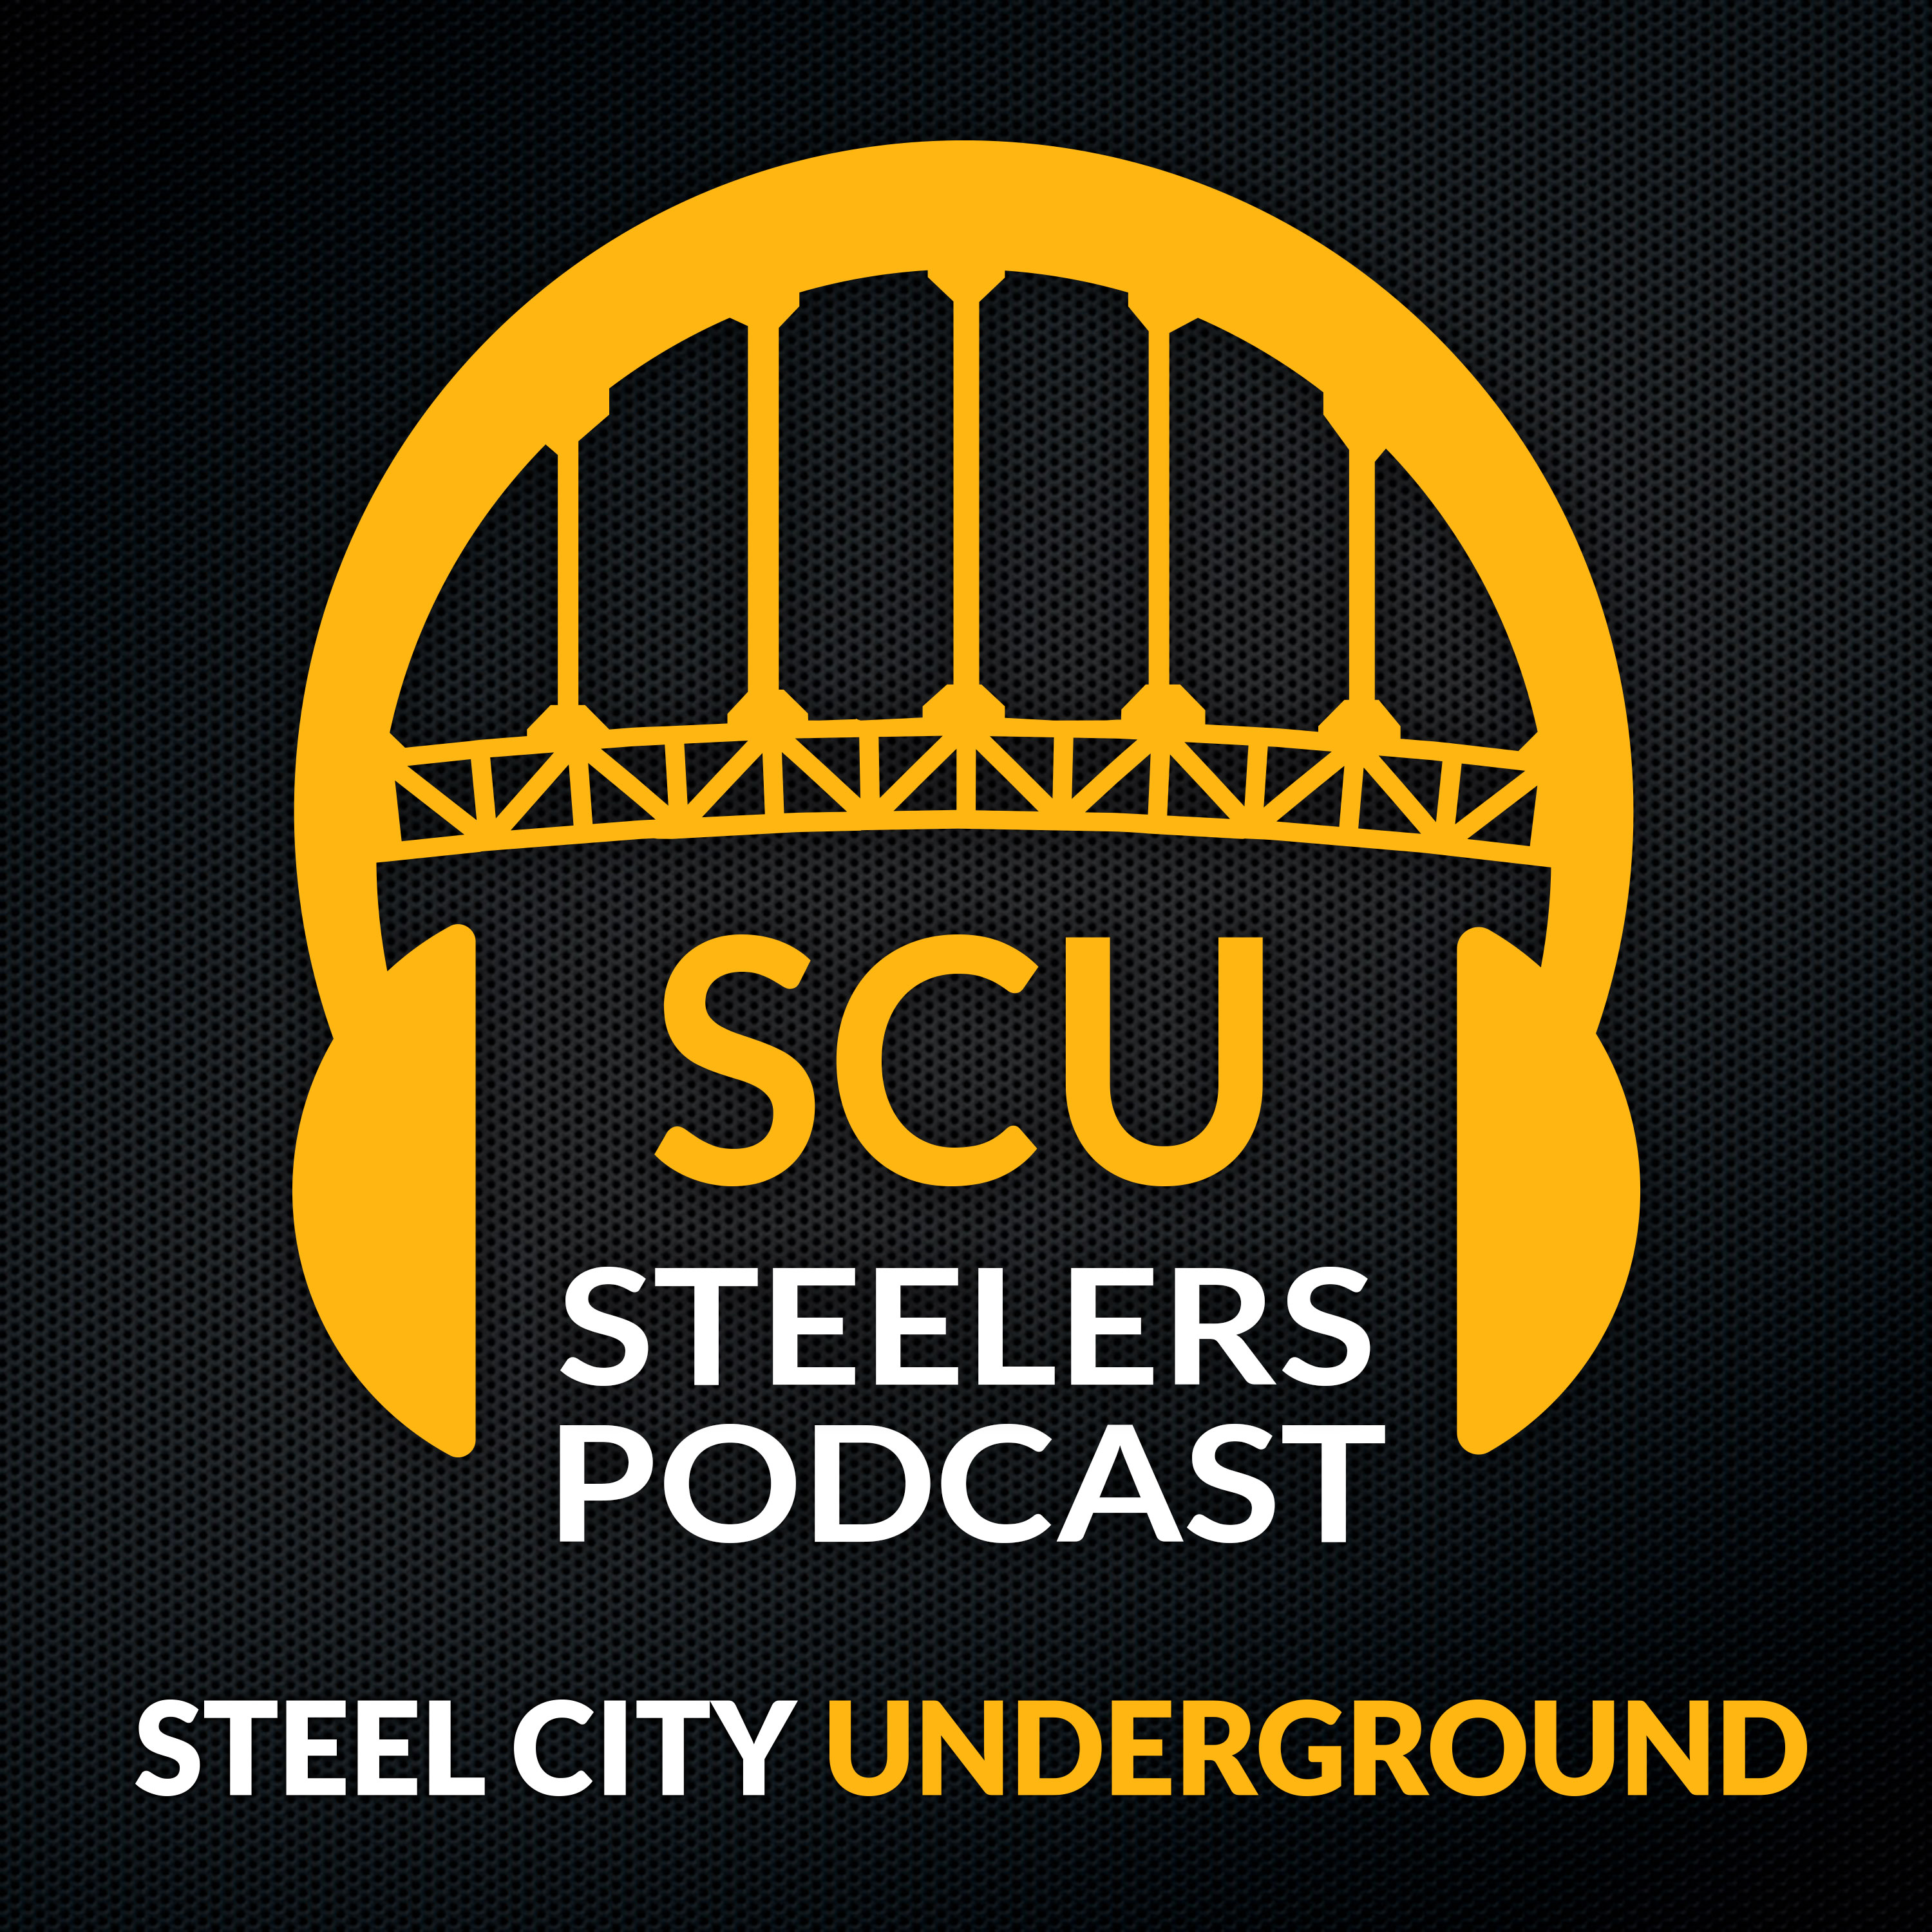 Pittsburgh Steelers Podcast Steel City Underground